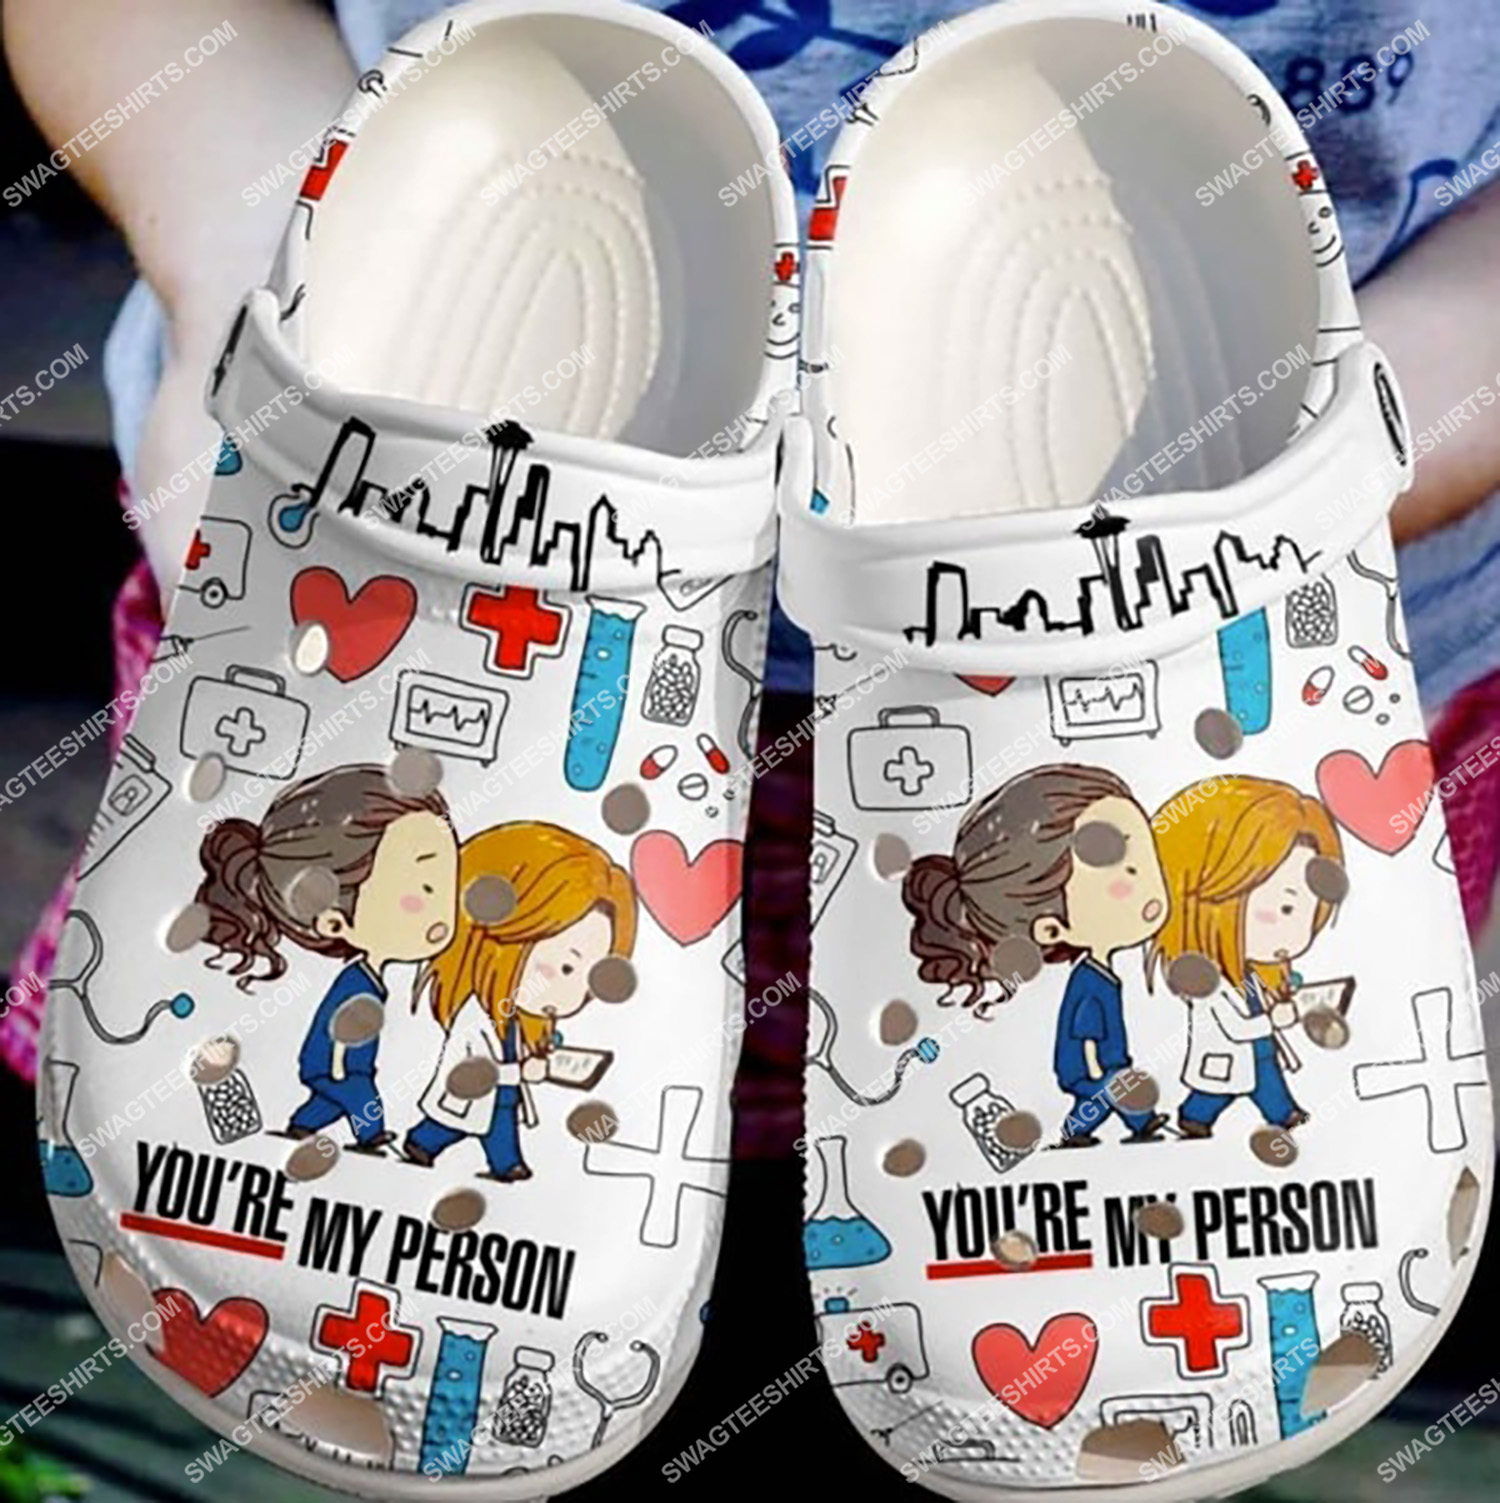 grey's anatomy you're my person all over printed crocs 1(1)